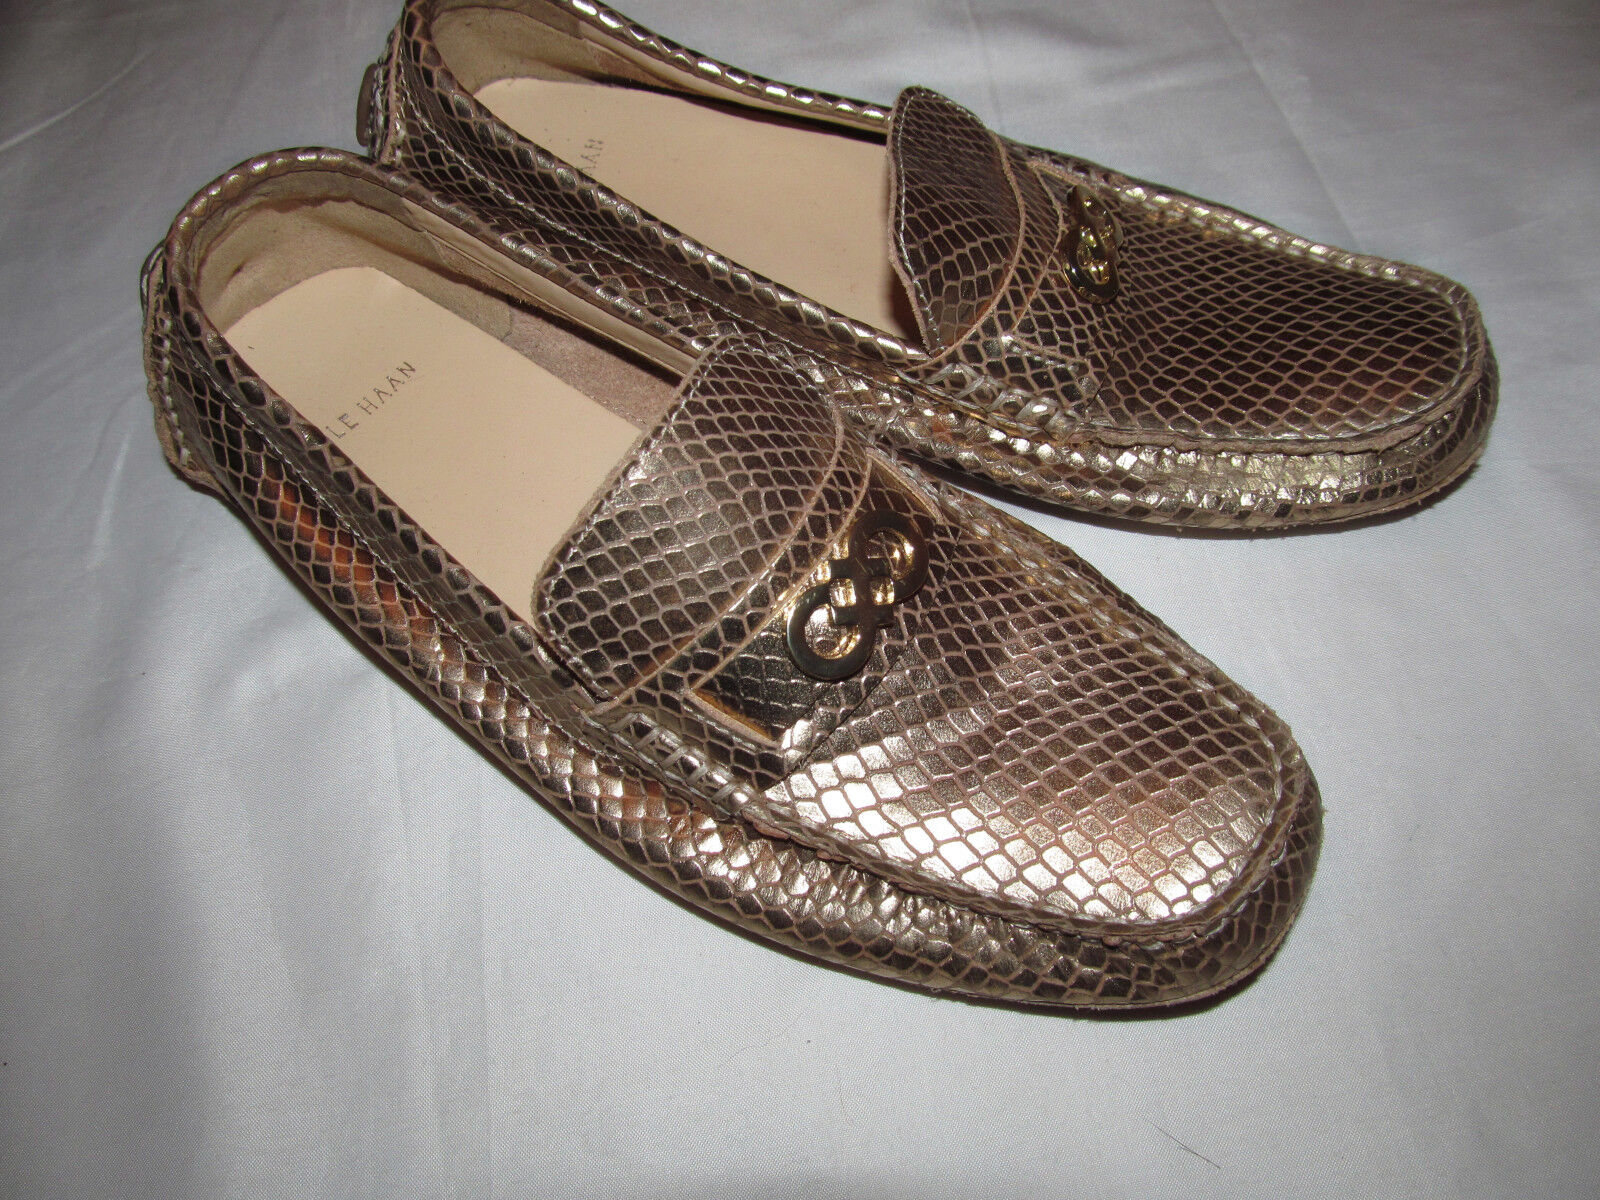 COLE HAAN SHELBY DRIVER gold snake snake snake embossed moccasins loafers shoes 6 B NEW 044769